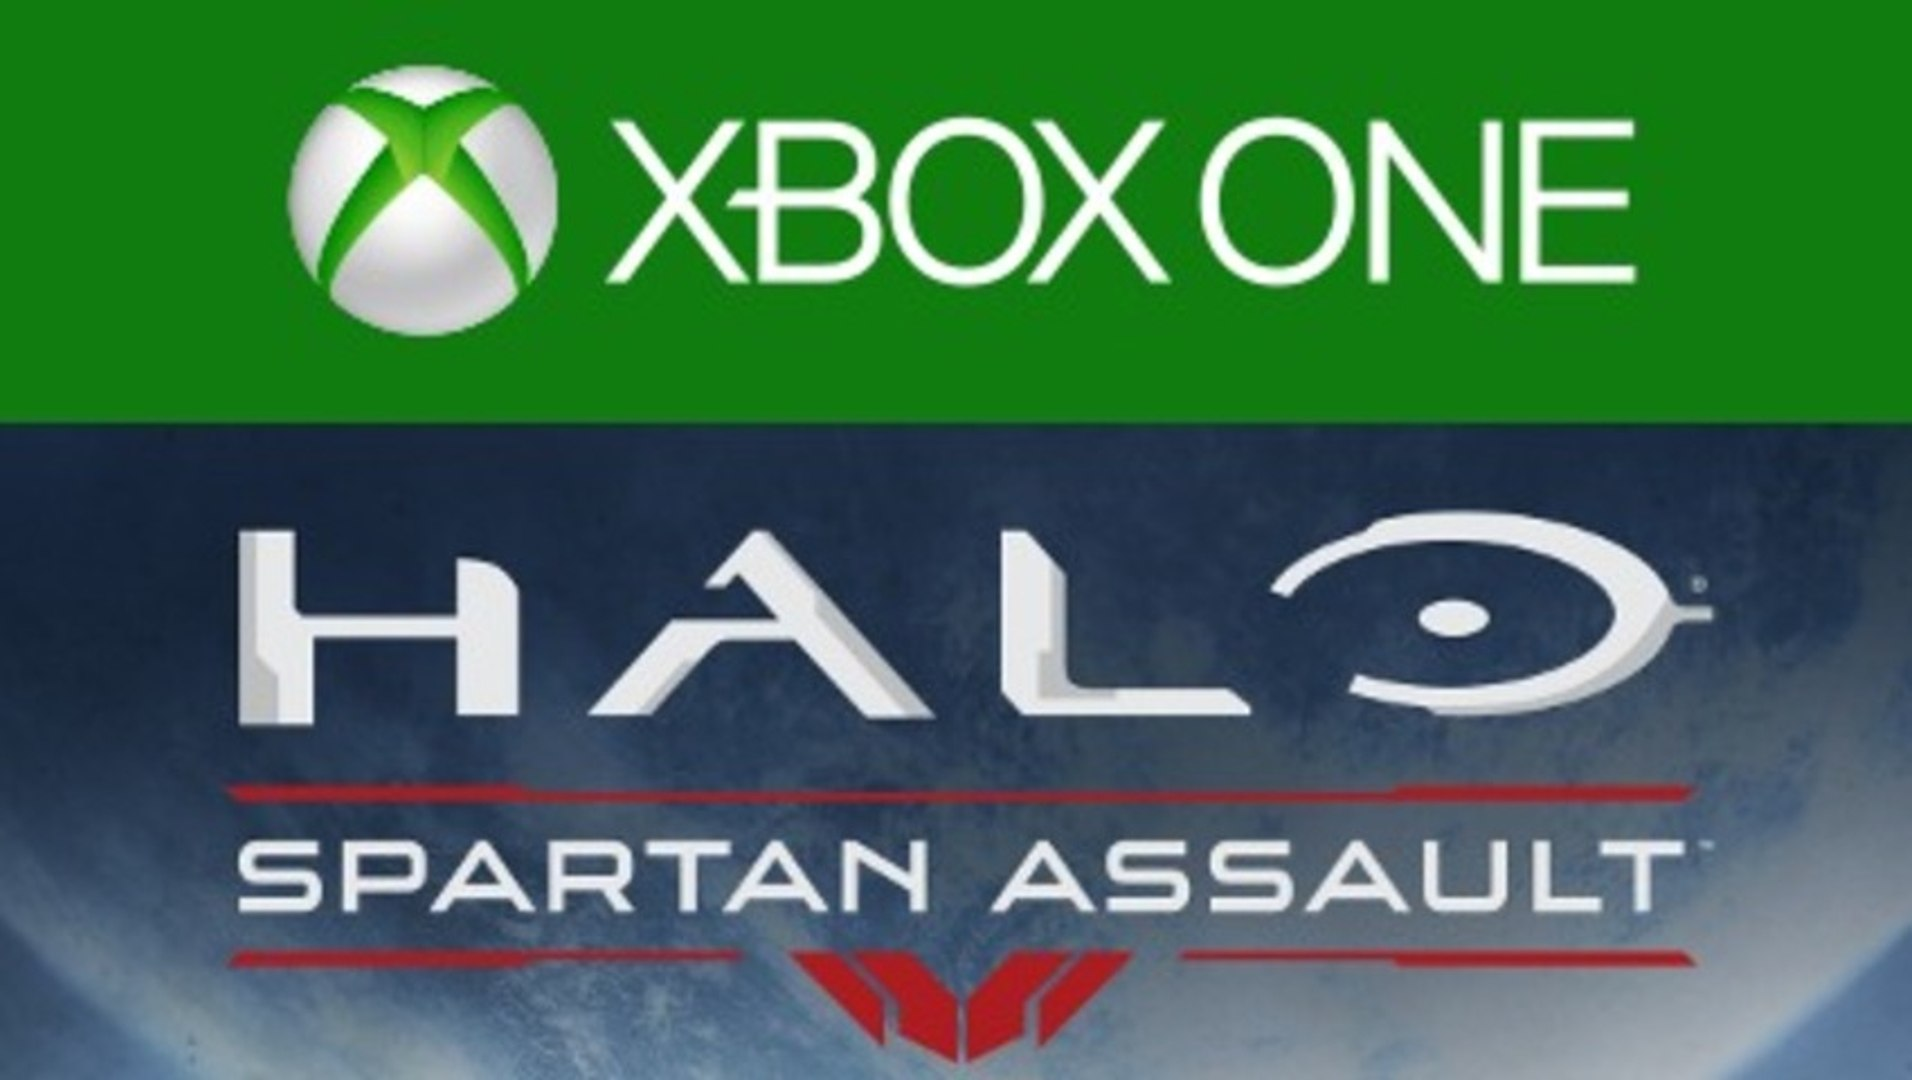 HALO Spartan Assault - (Xbox One/Xbox 360) Official Game Trailer [EN]